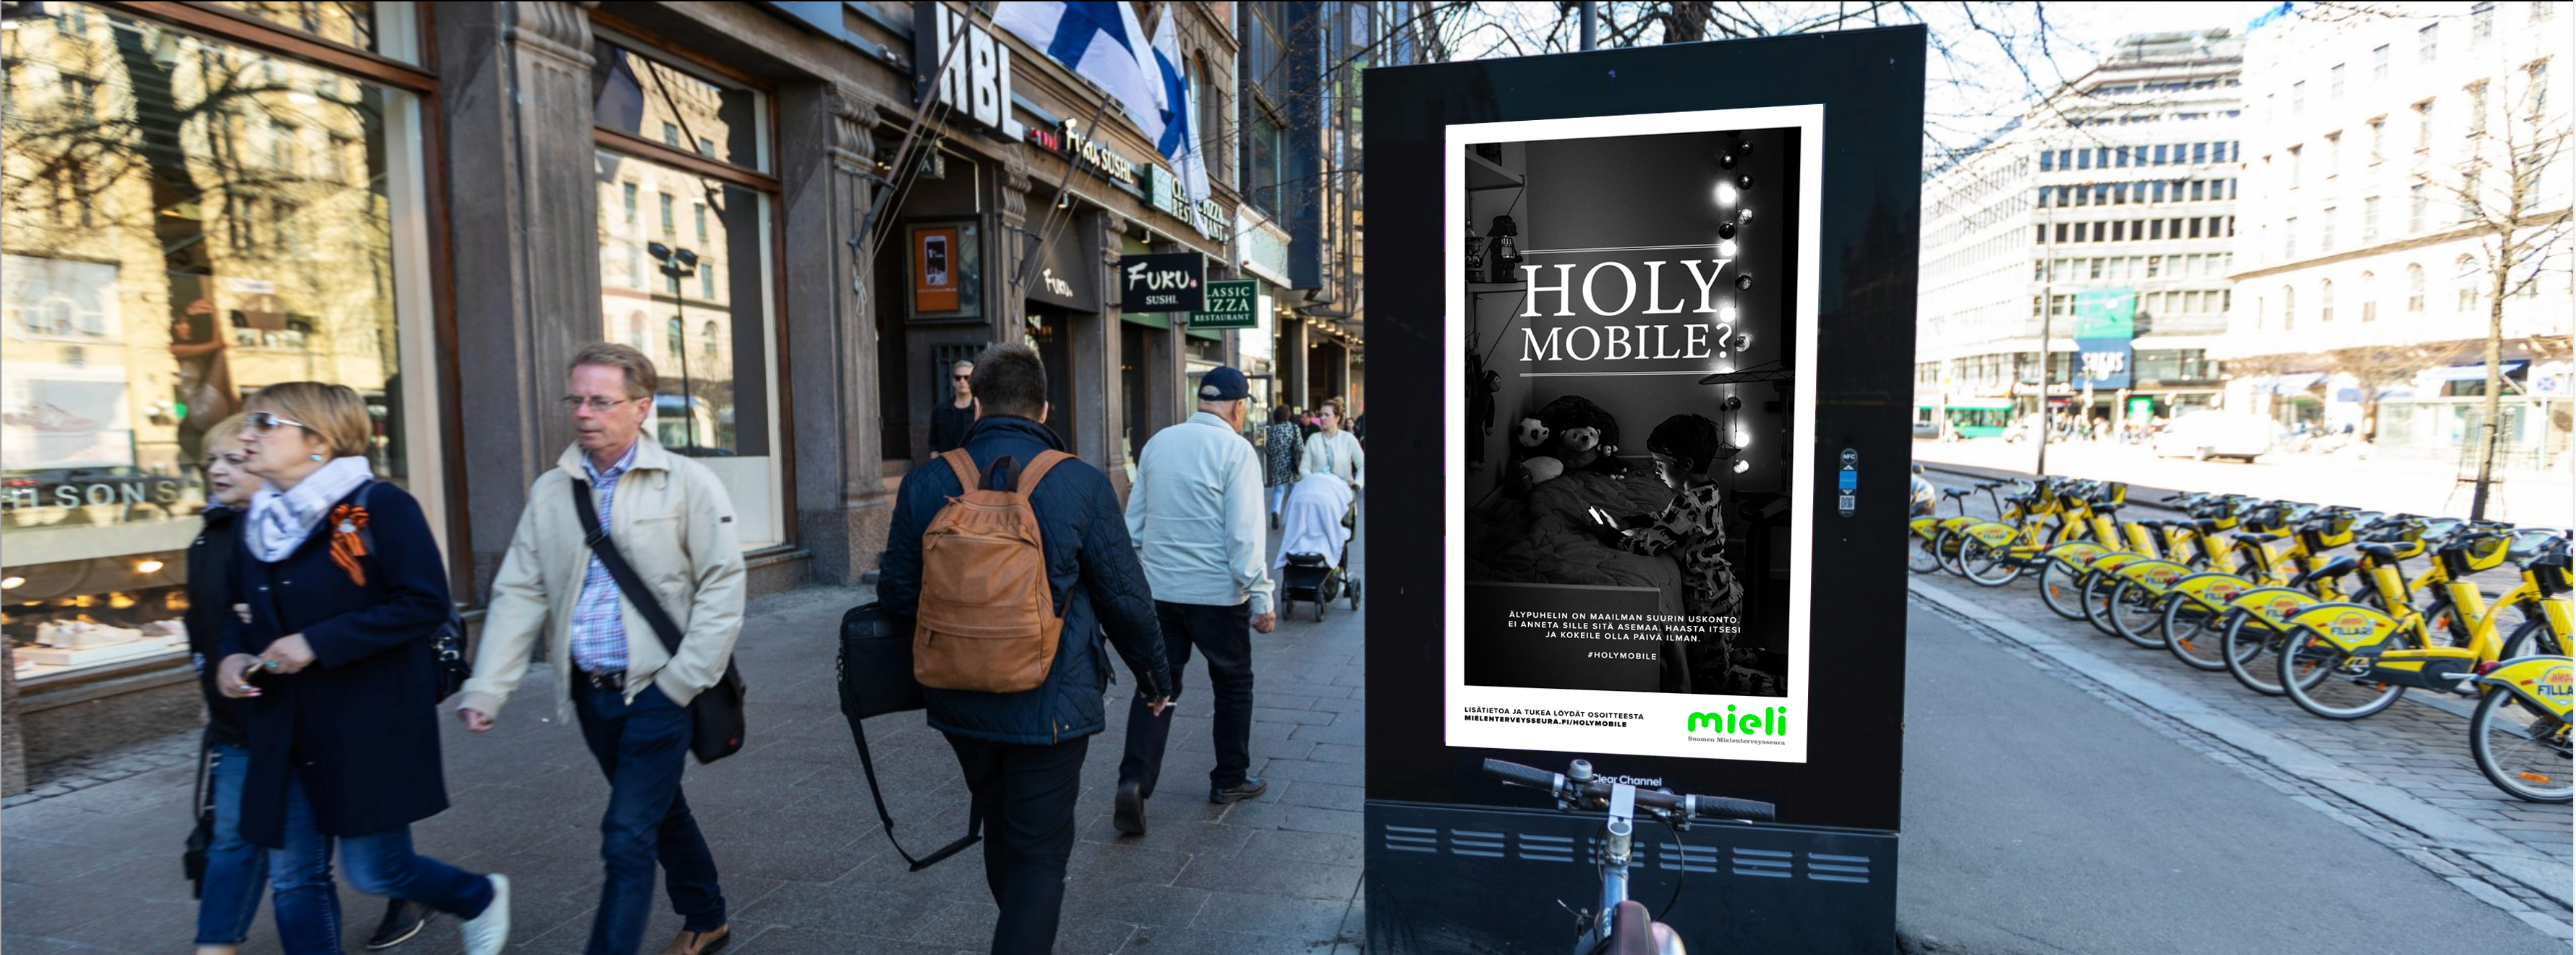 holy-mobile-streetview